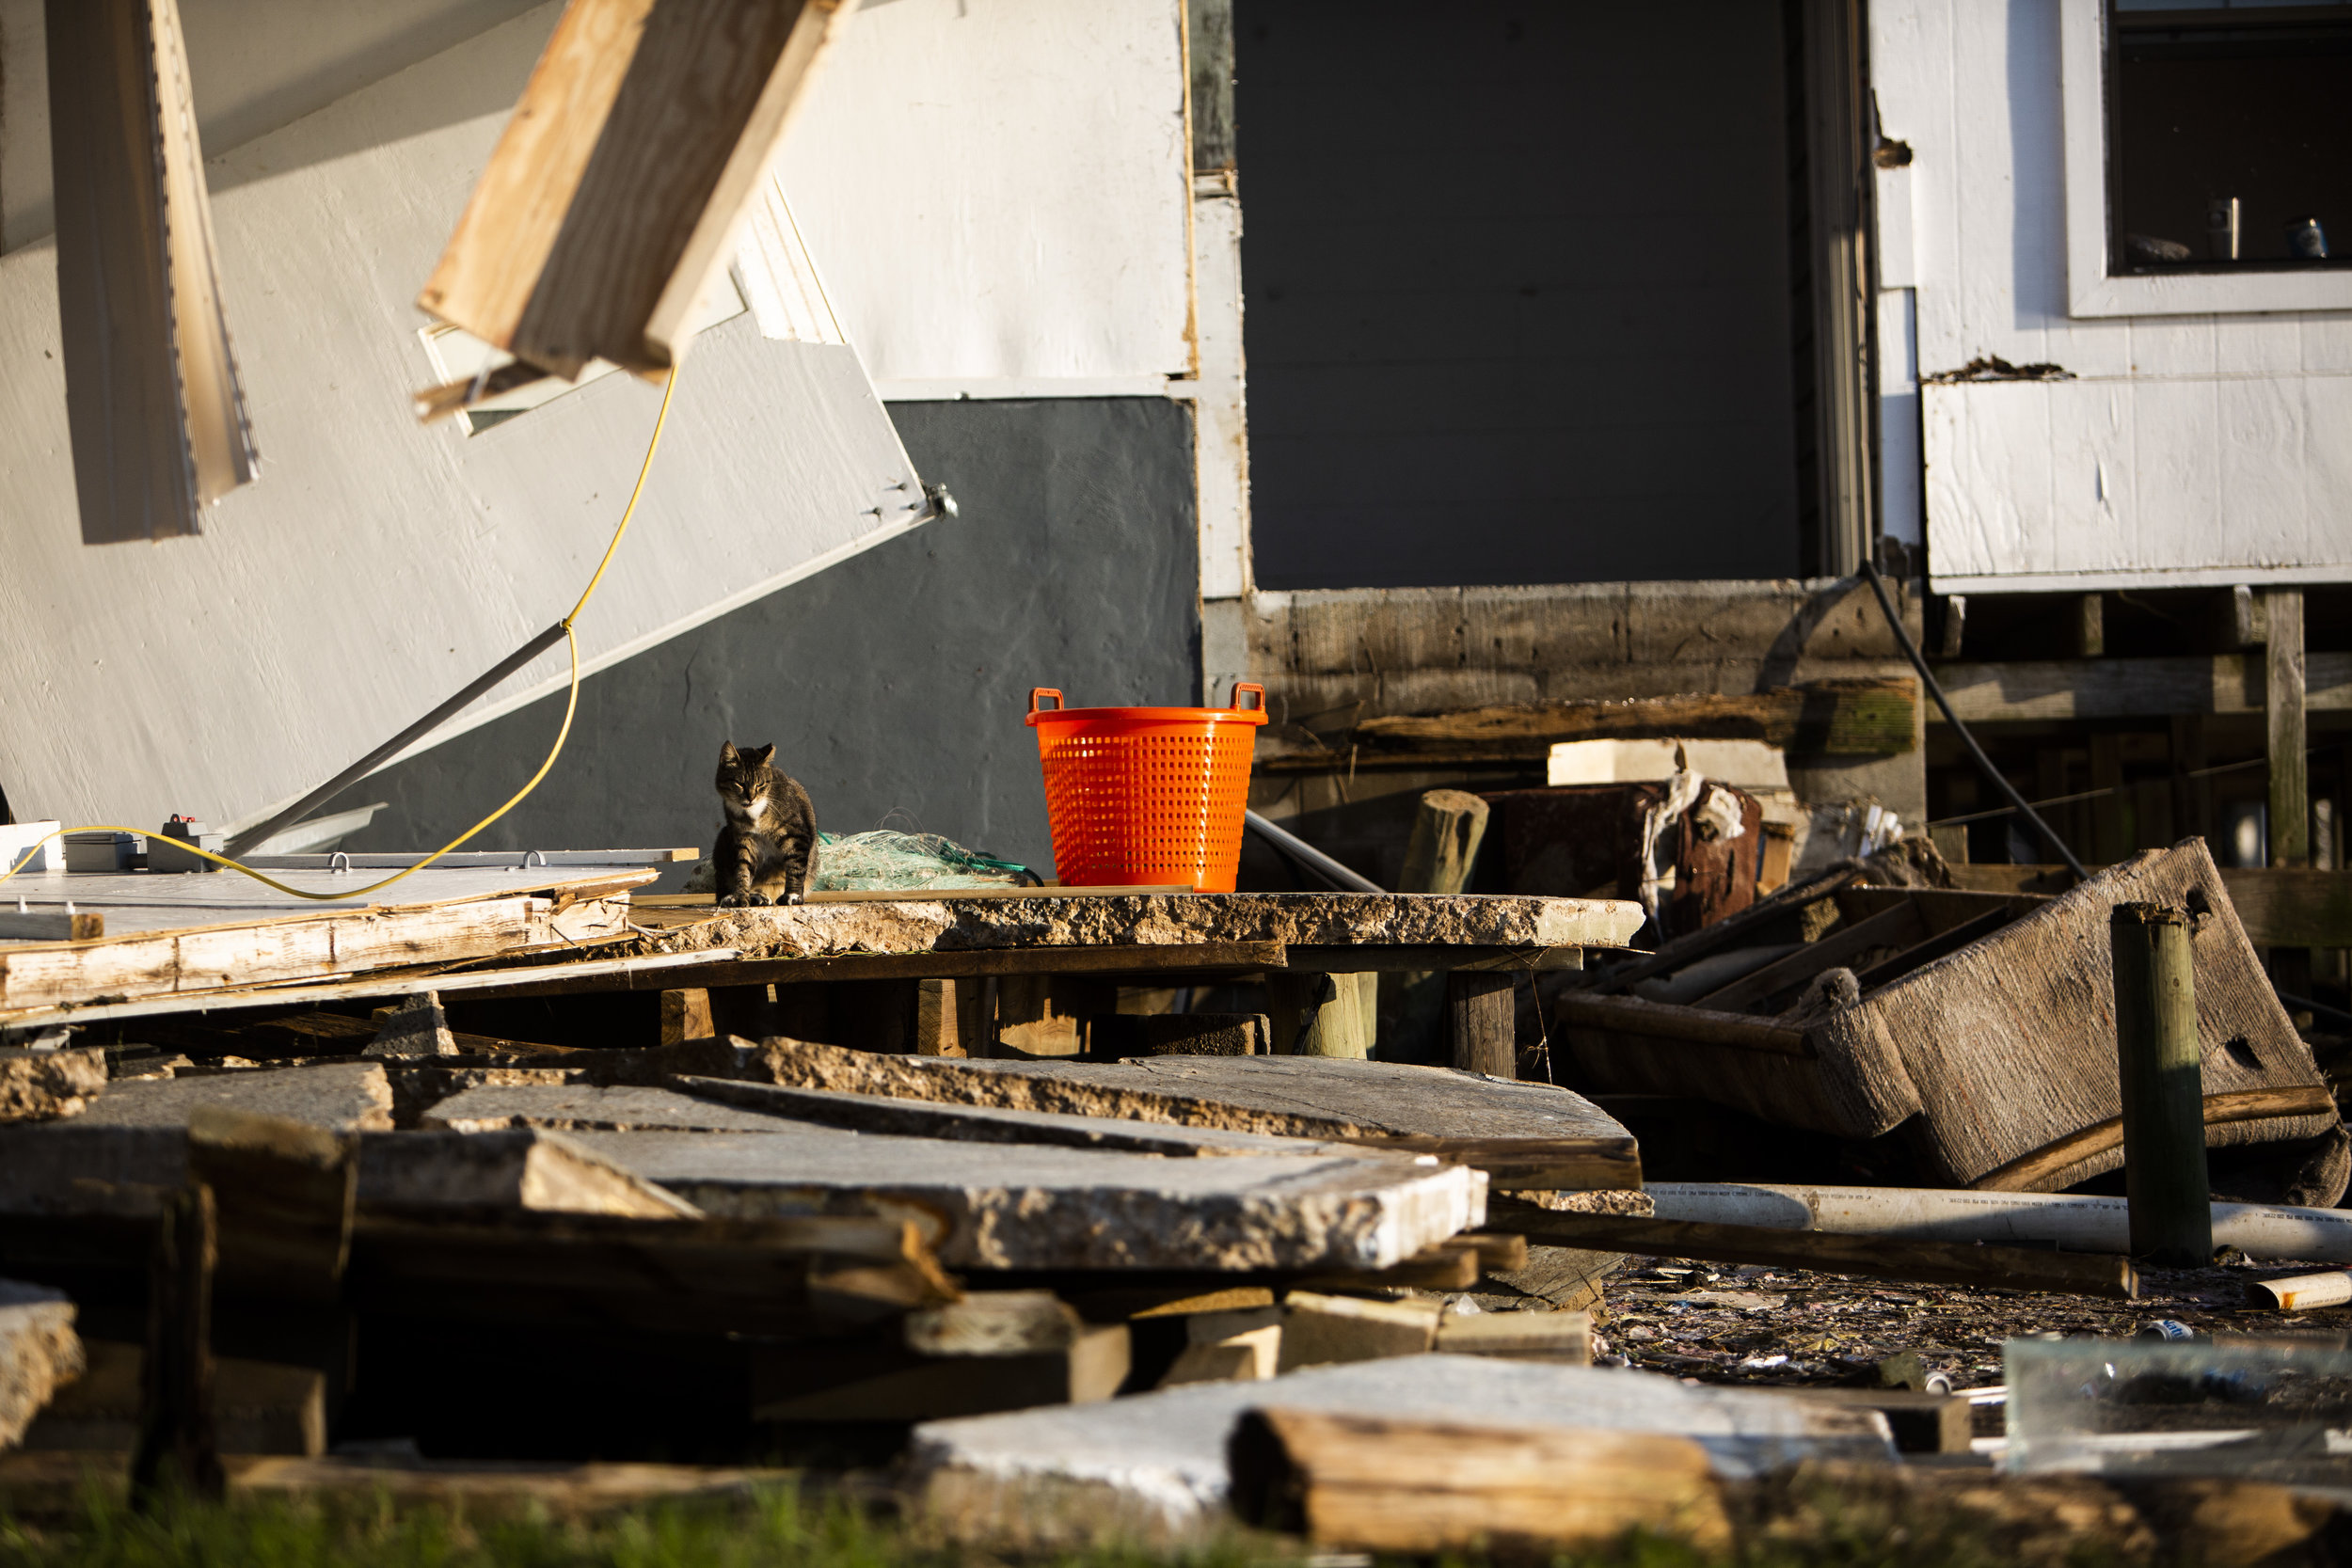 A cat sits on a pile of wreckage in Spring Creek on October 11, 2018. Hurricane Michael demolished the old fishing house when it hit on October 10, 2018.